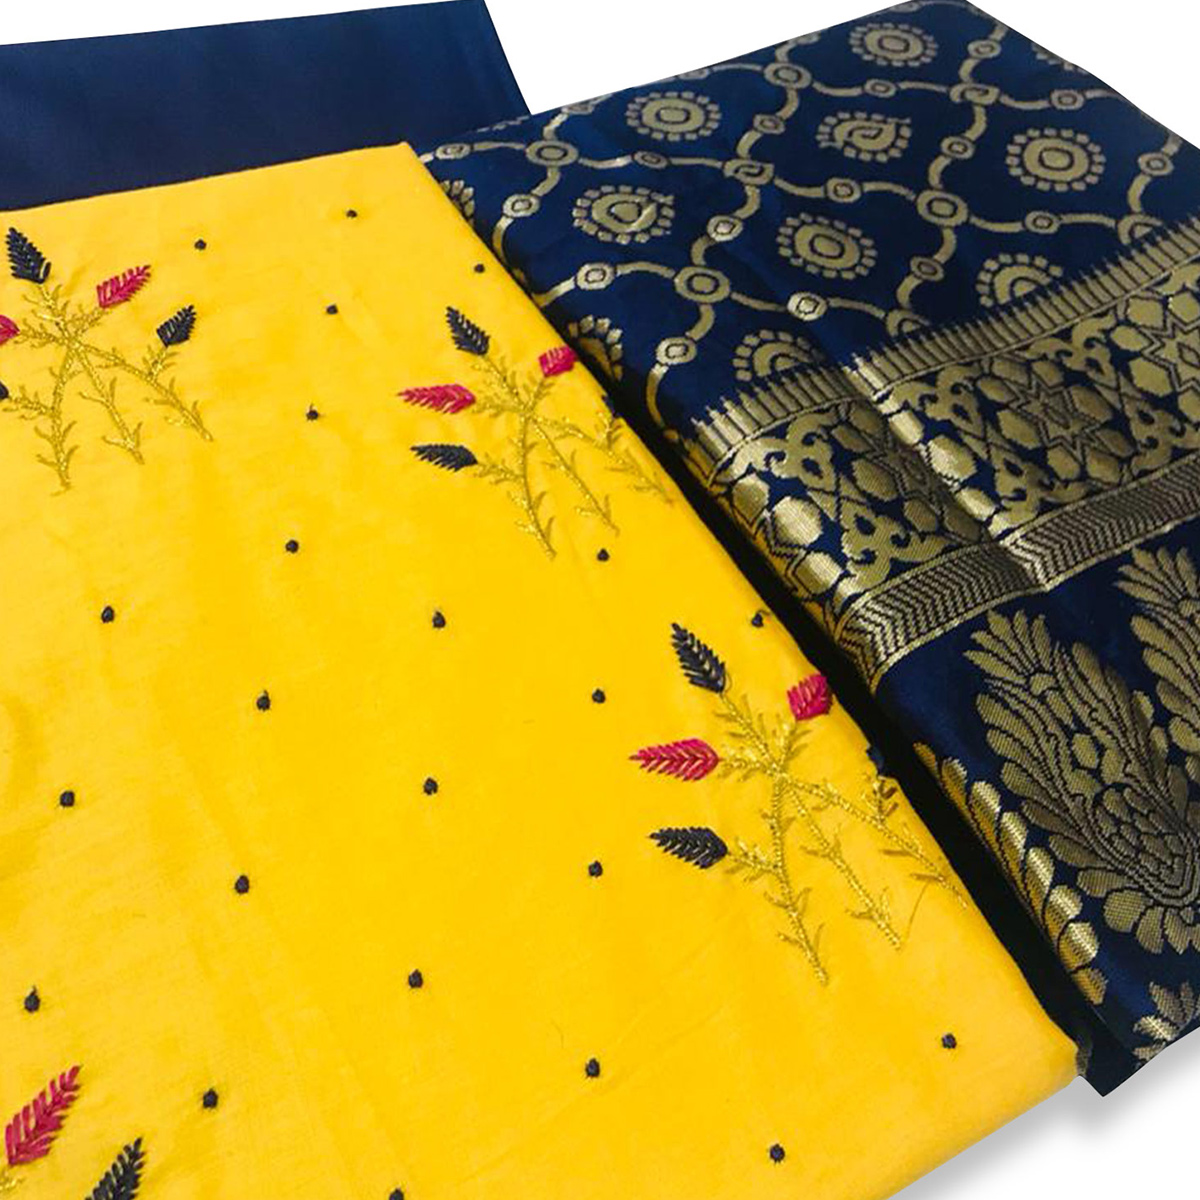 Unique Yellow Colored Partywear Embroidered Cotton Dress Material With Banarasi Dupatta